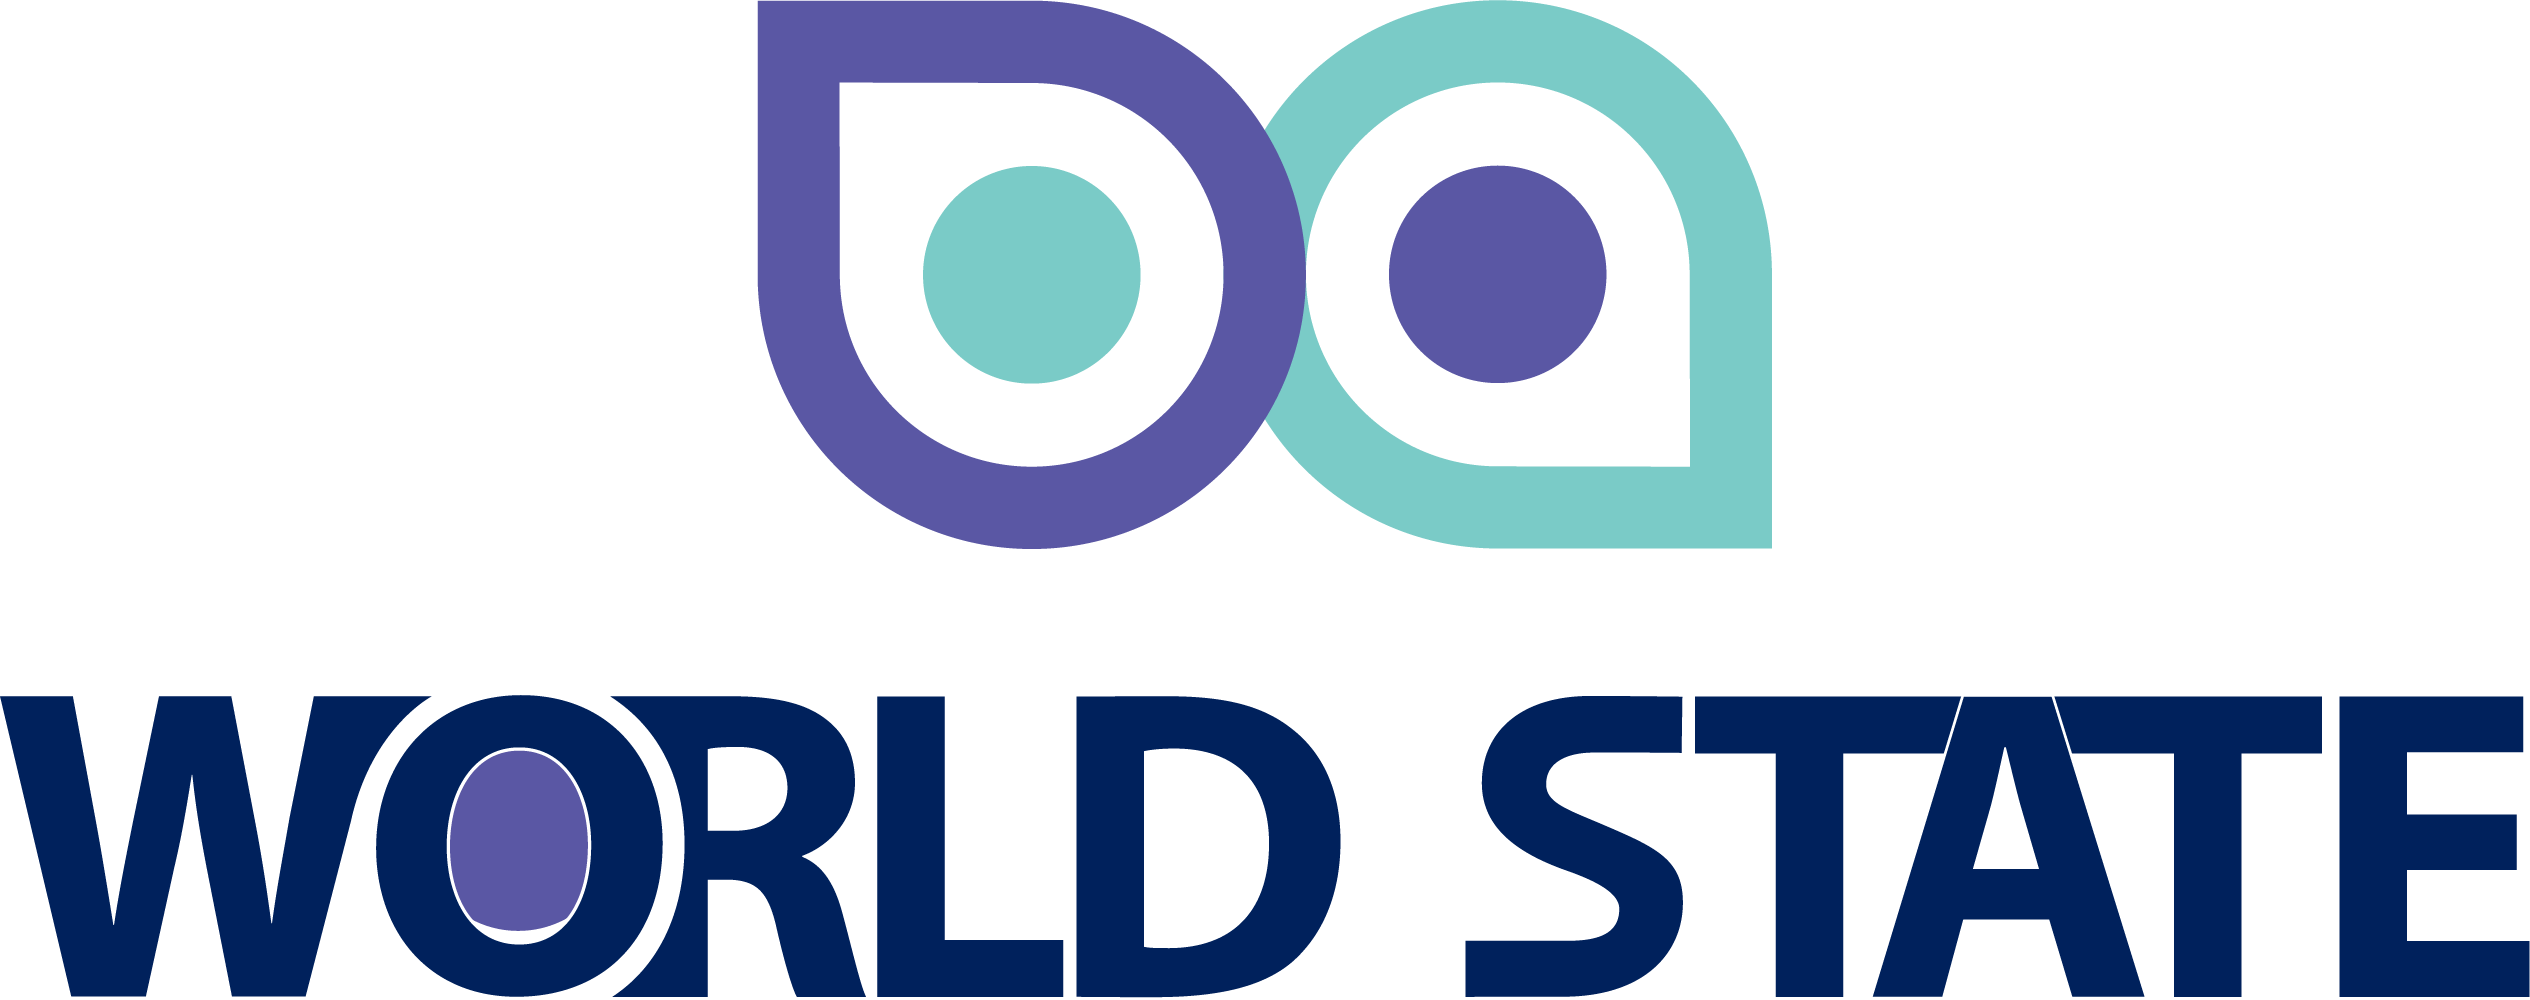 World State Limited